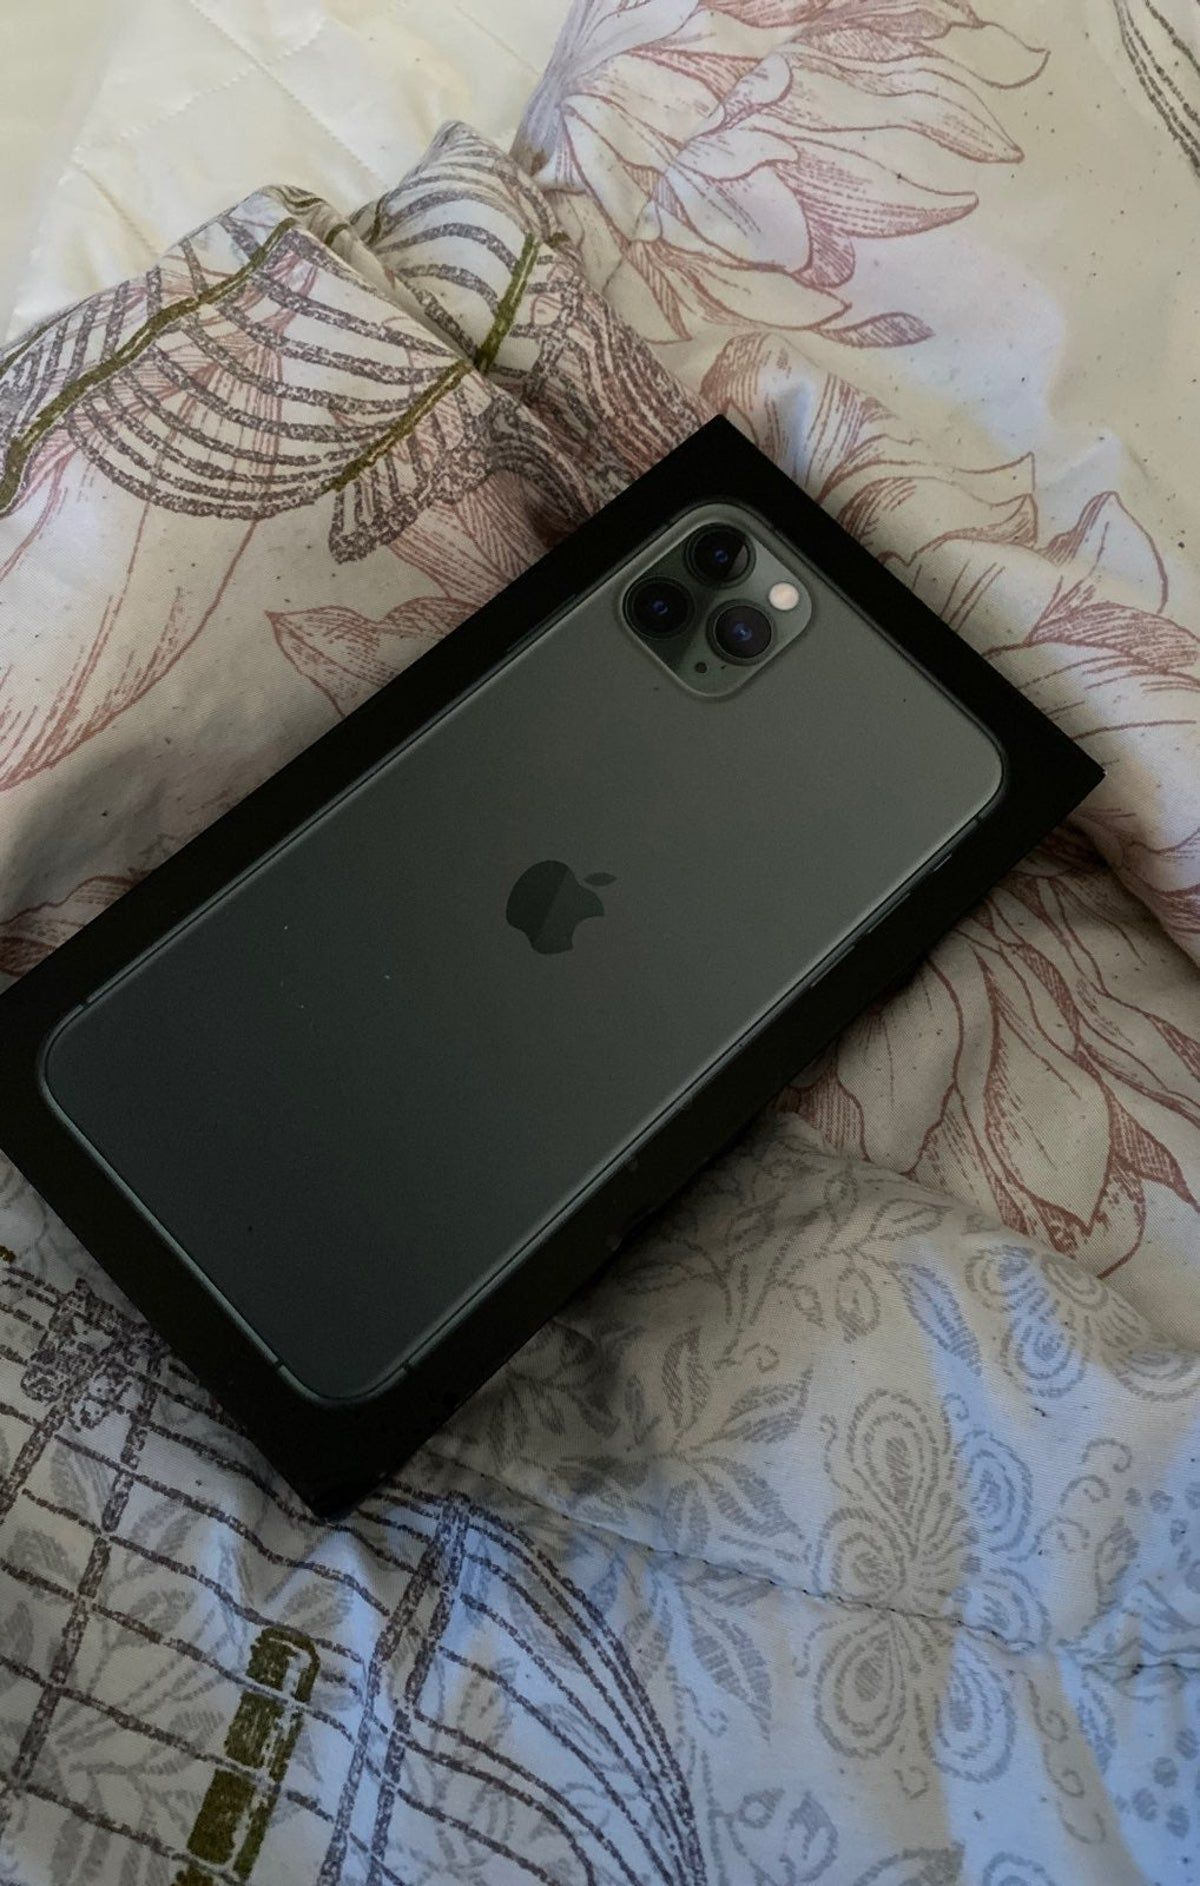 Iphone 11 Pro Max Midnight Green 64 Gb V In 2020 Iphone Apple Smartphone Apple Watch Iphone